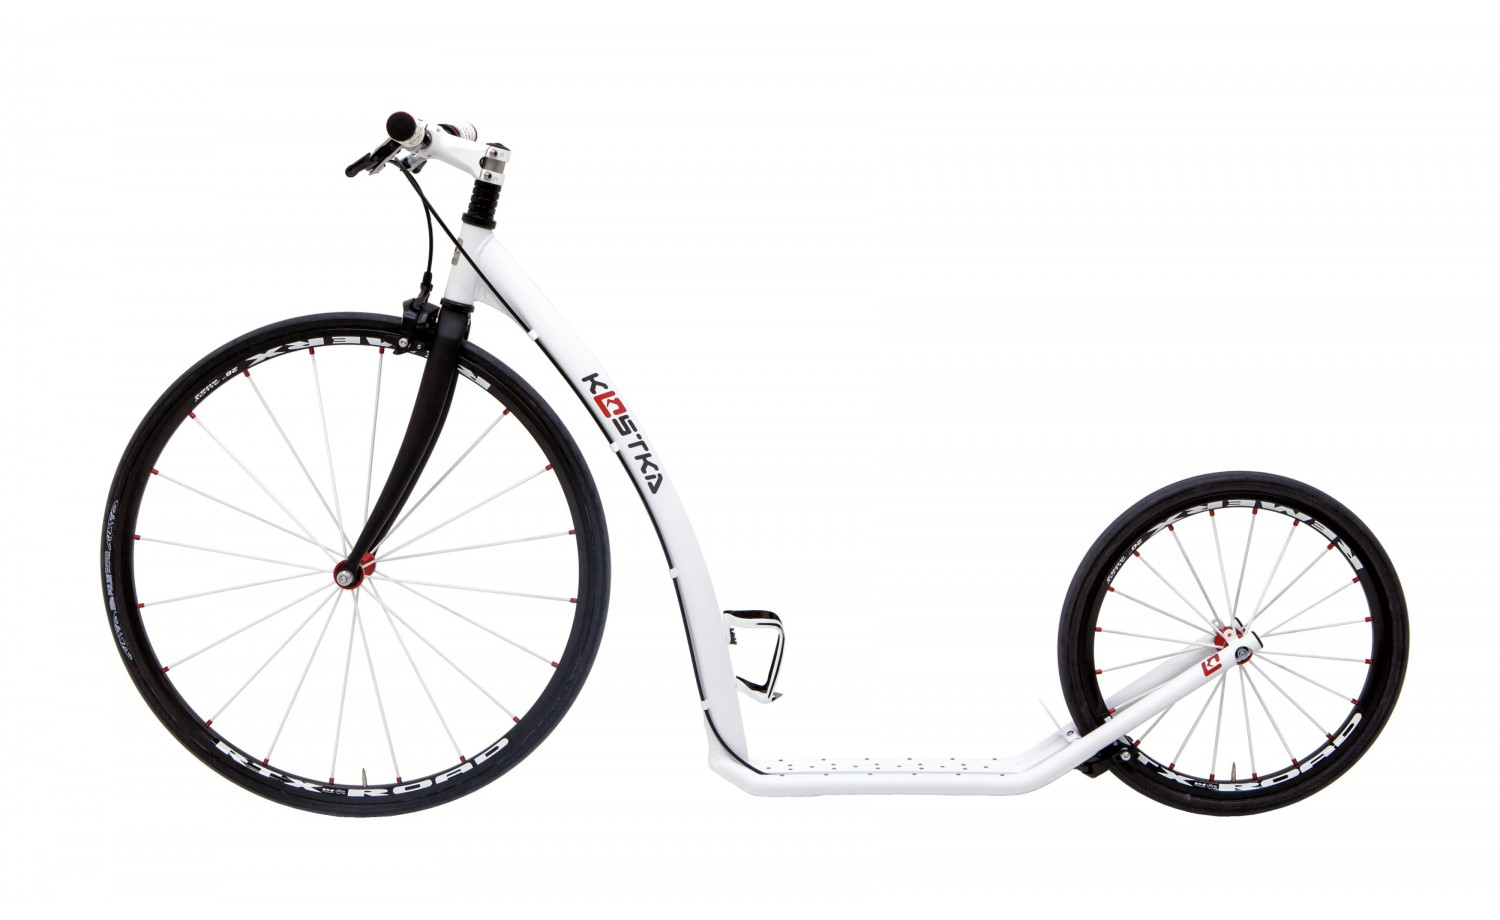 Footbike KOSTKA RACER PRO (G4) - Limited edition